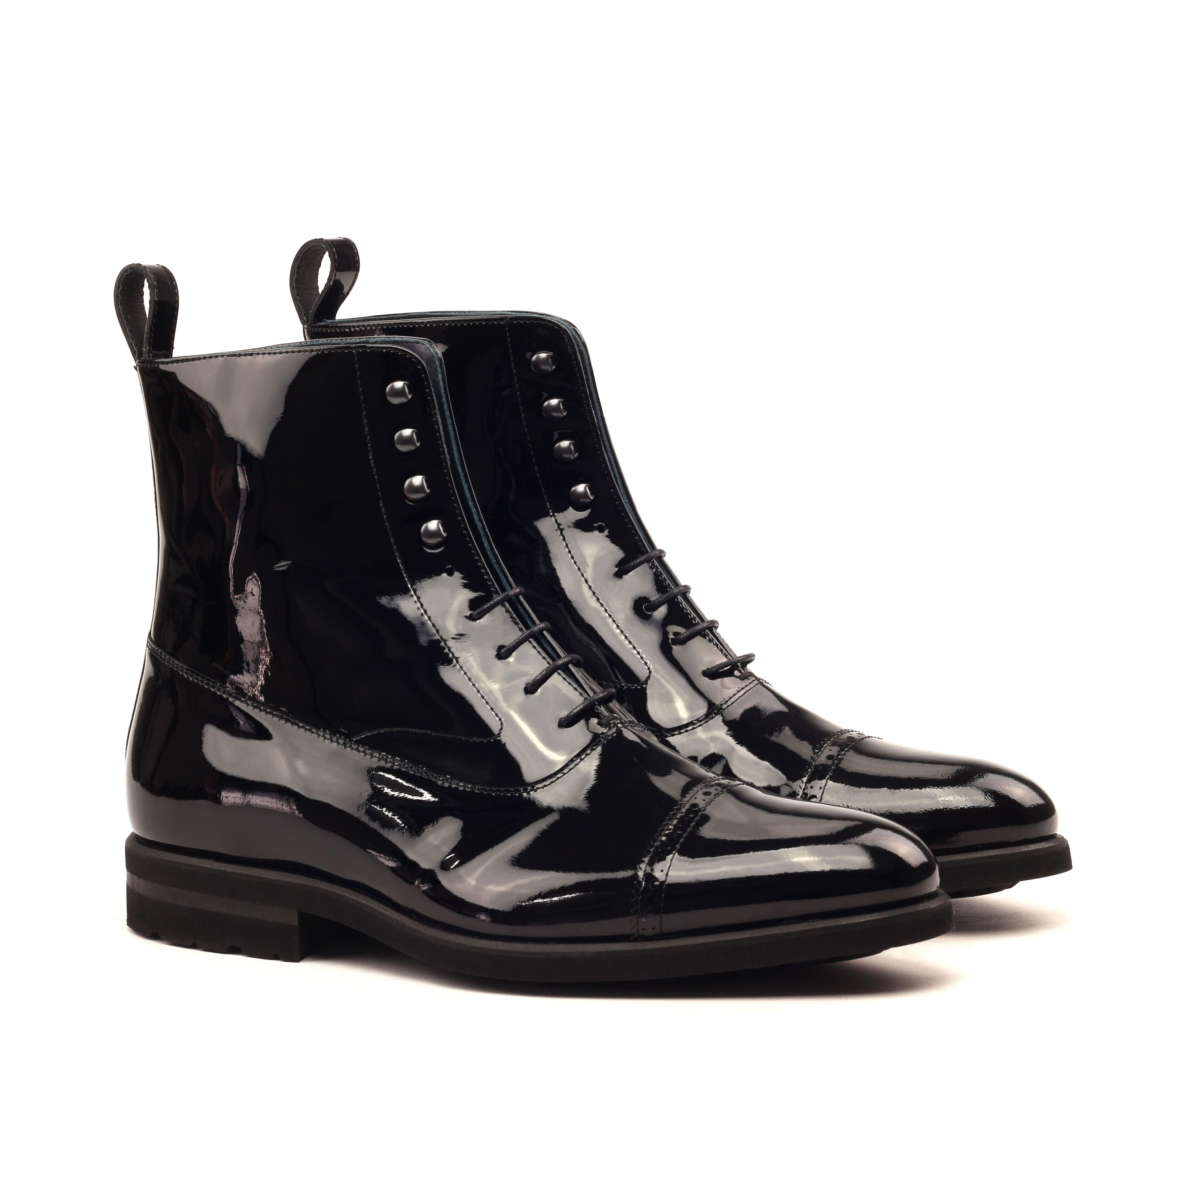 Black patent leather Balmoral boot